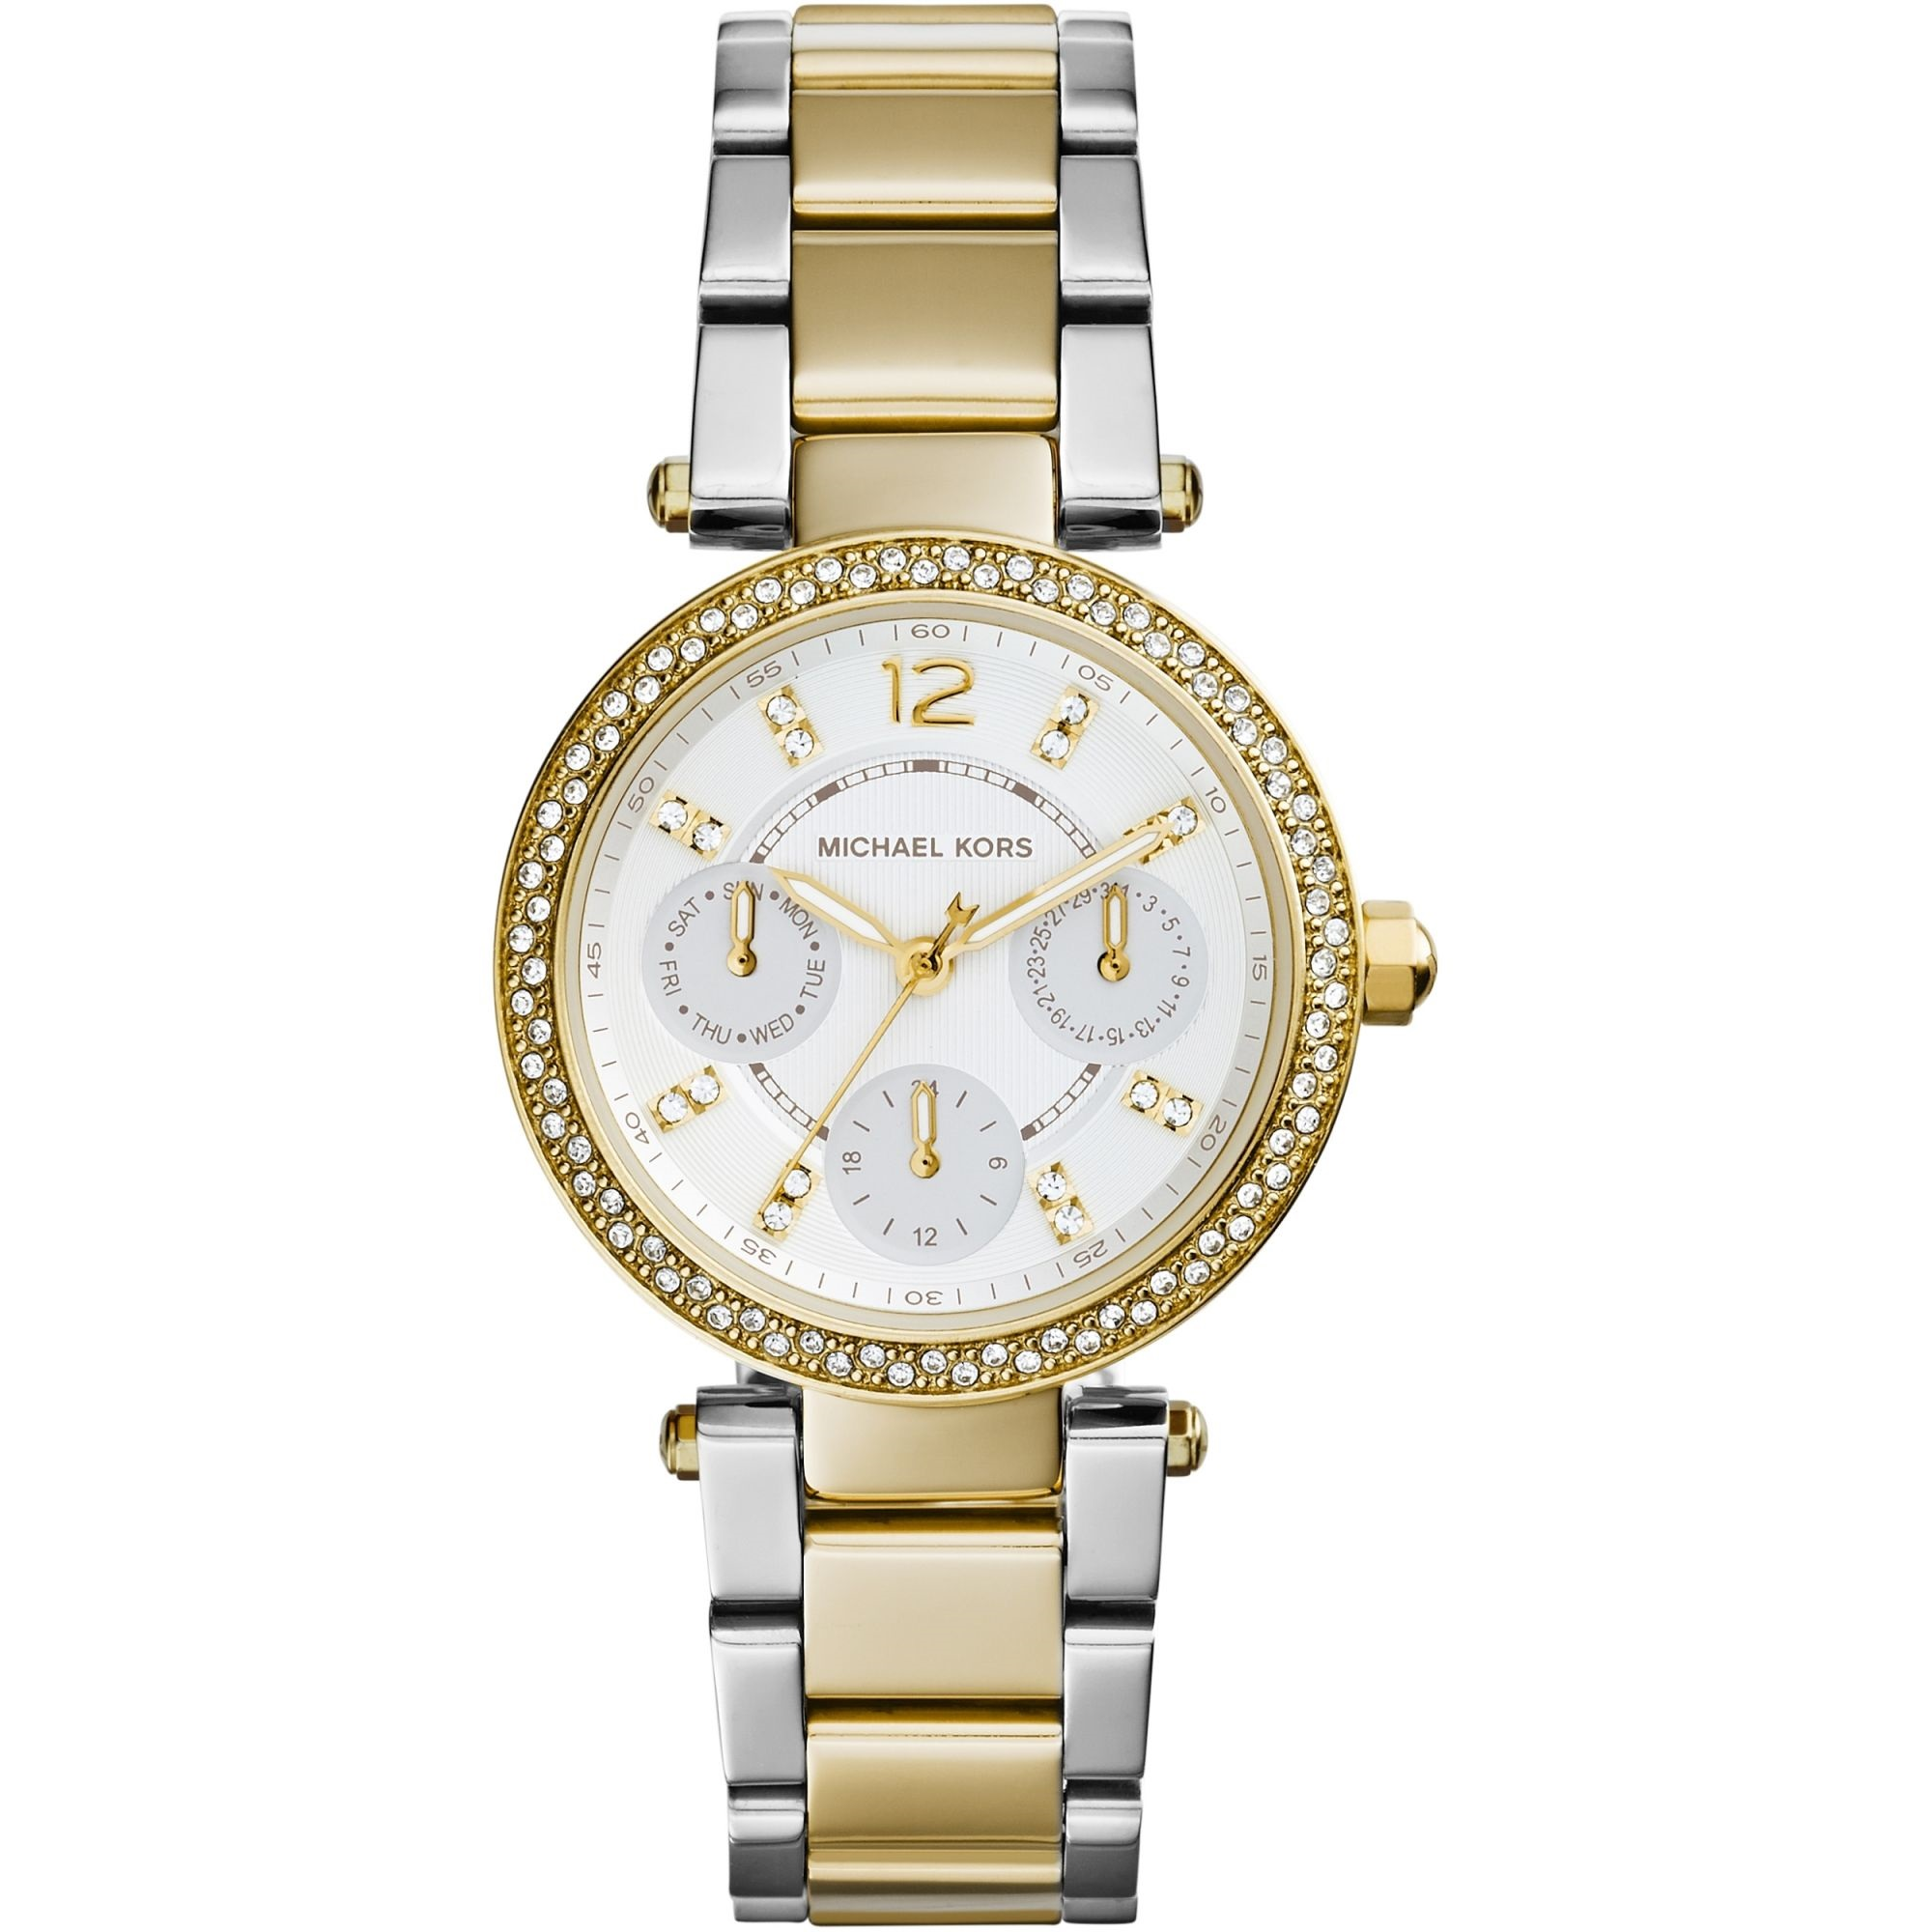 7e9ea8ffc64149 Orologio Michael Kors Ladies' Parker Watch MK6055- inverno 2015